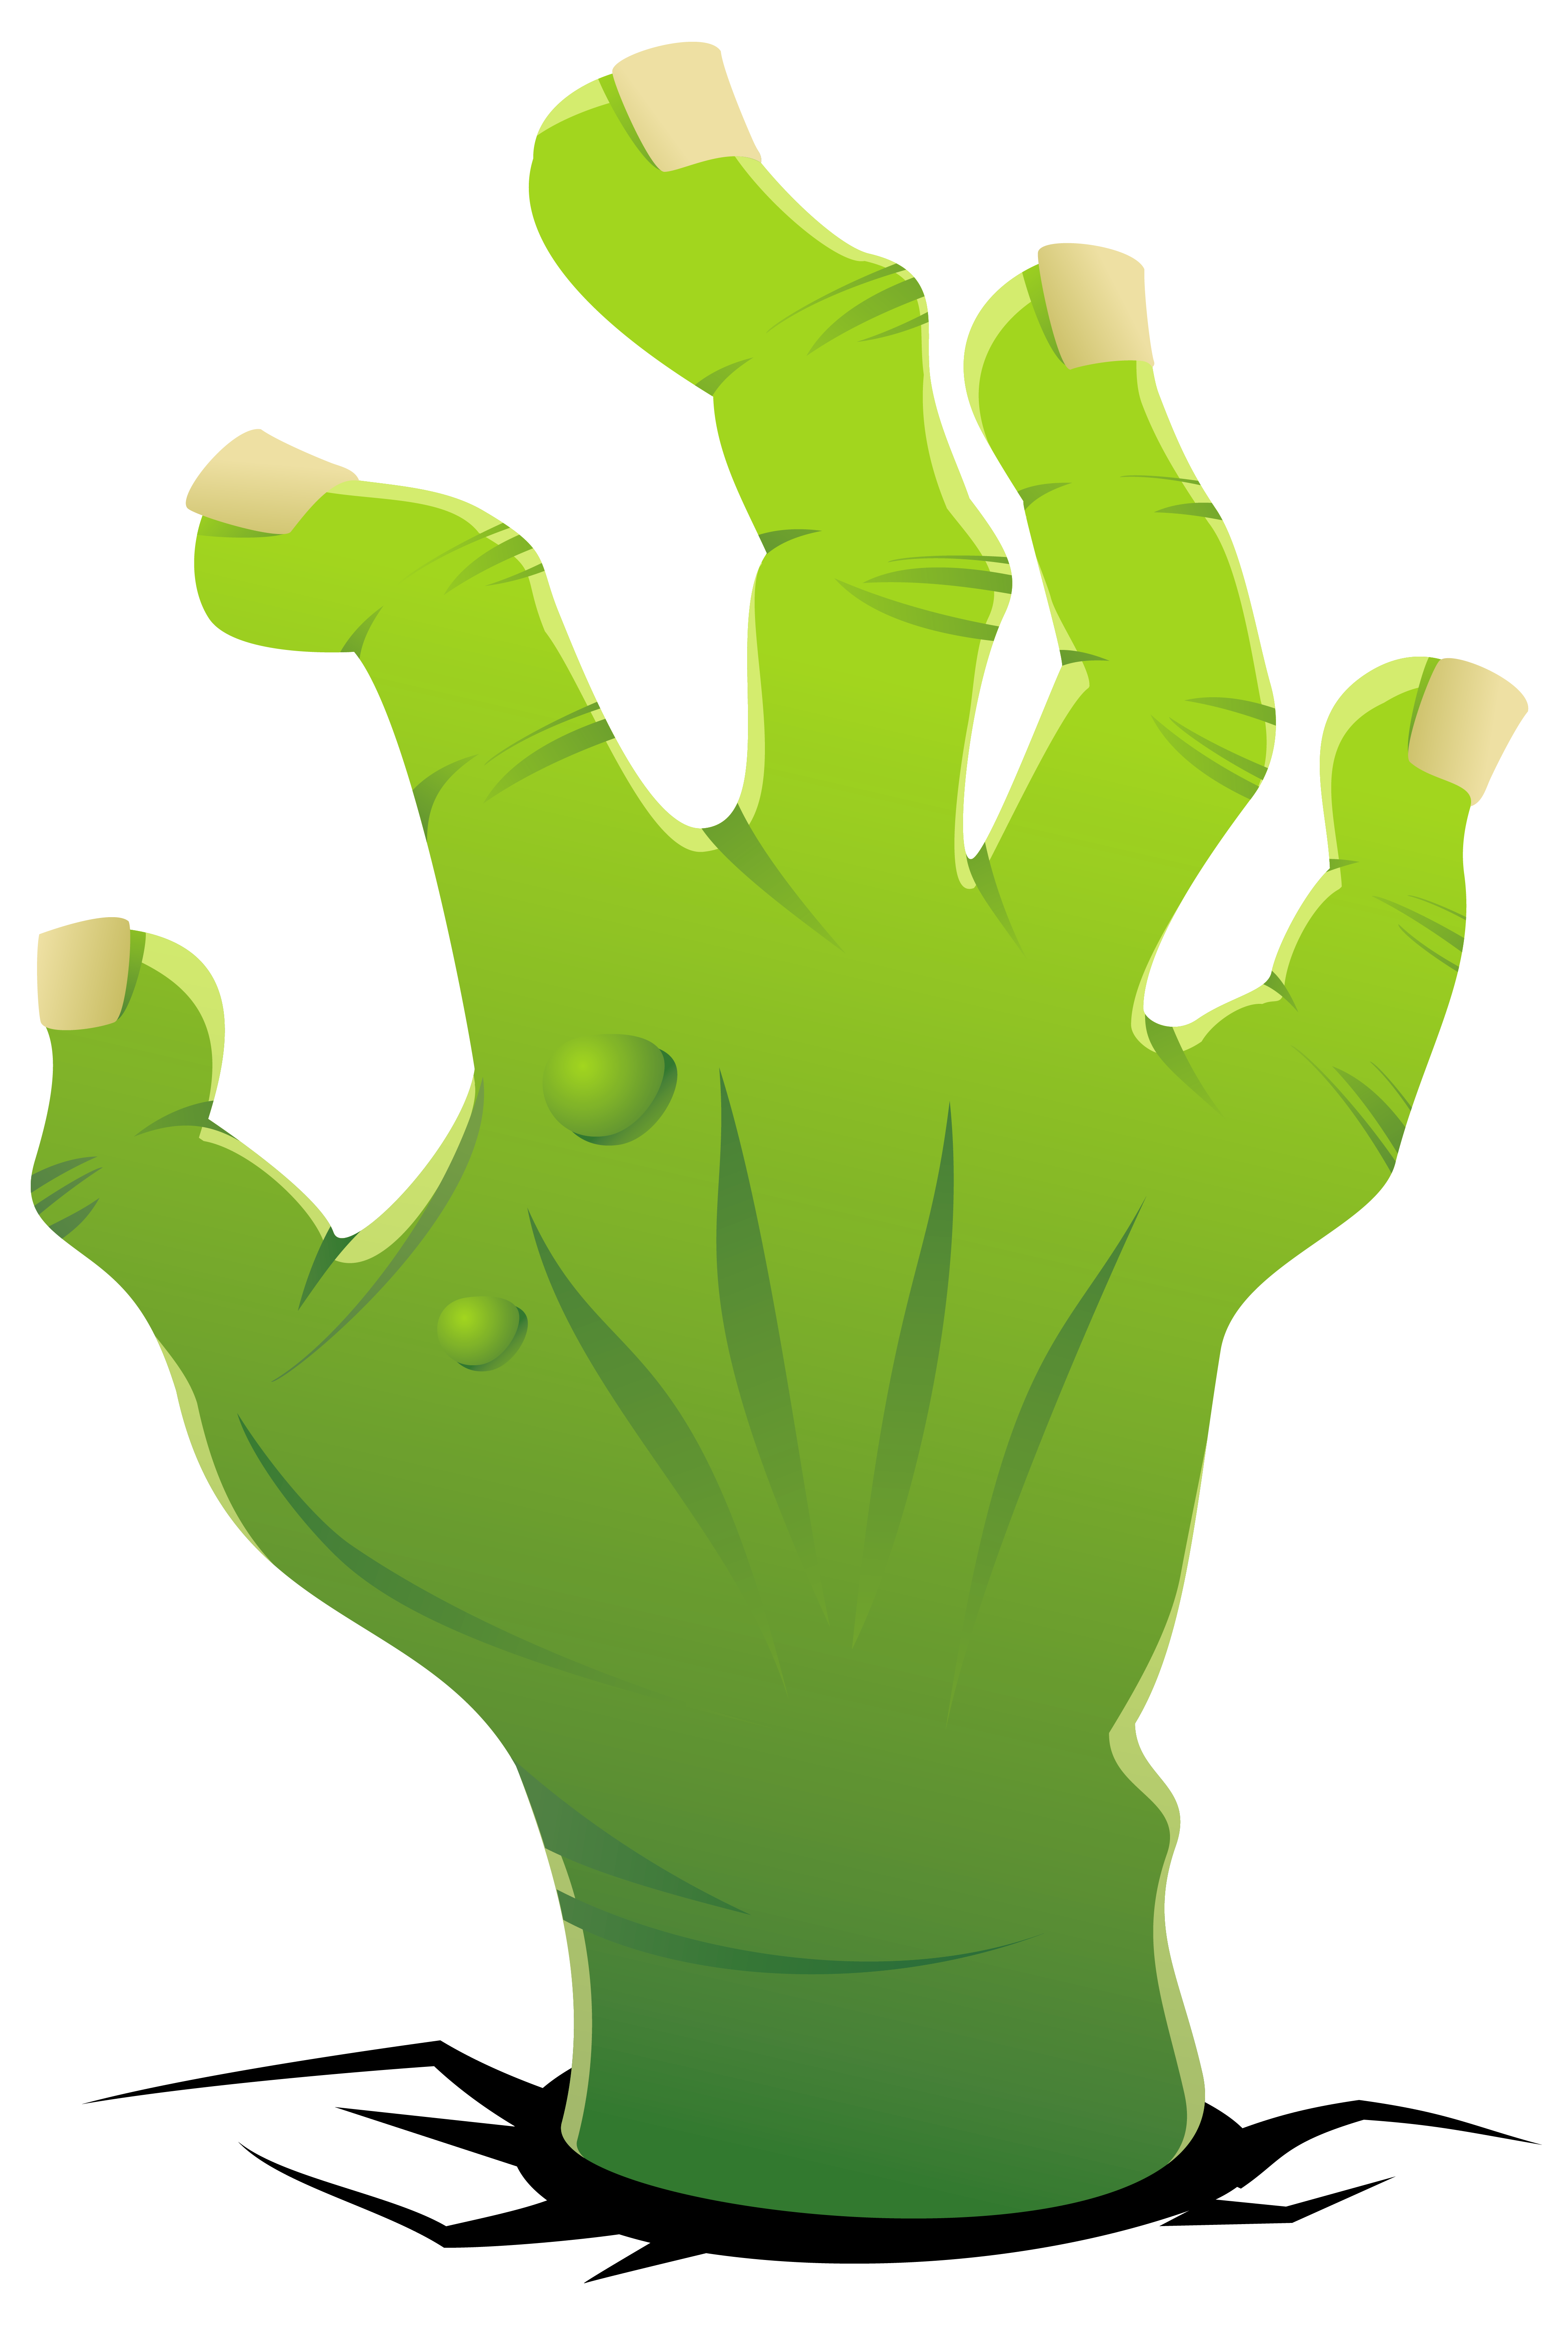 Zombie hand png image. Hayride clipart religious